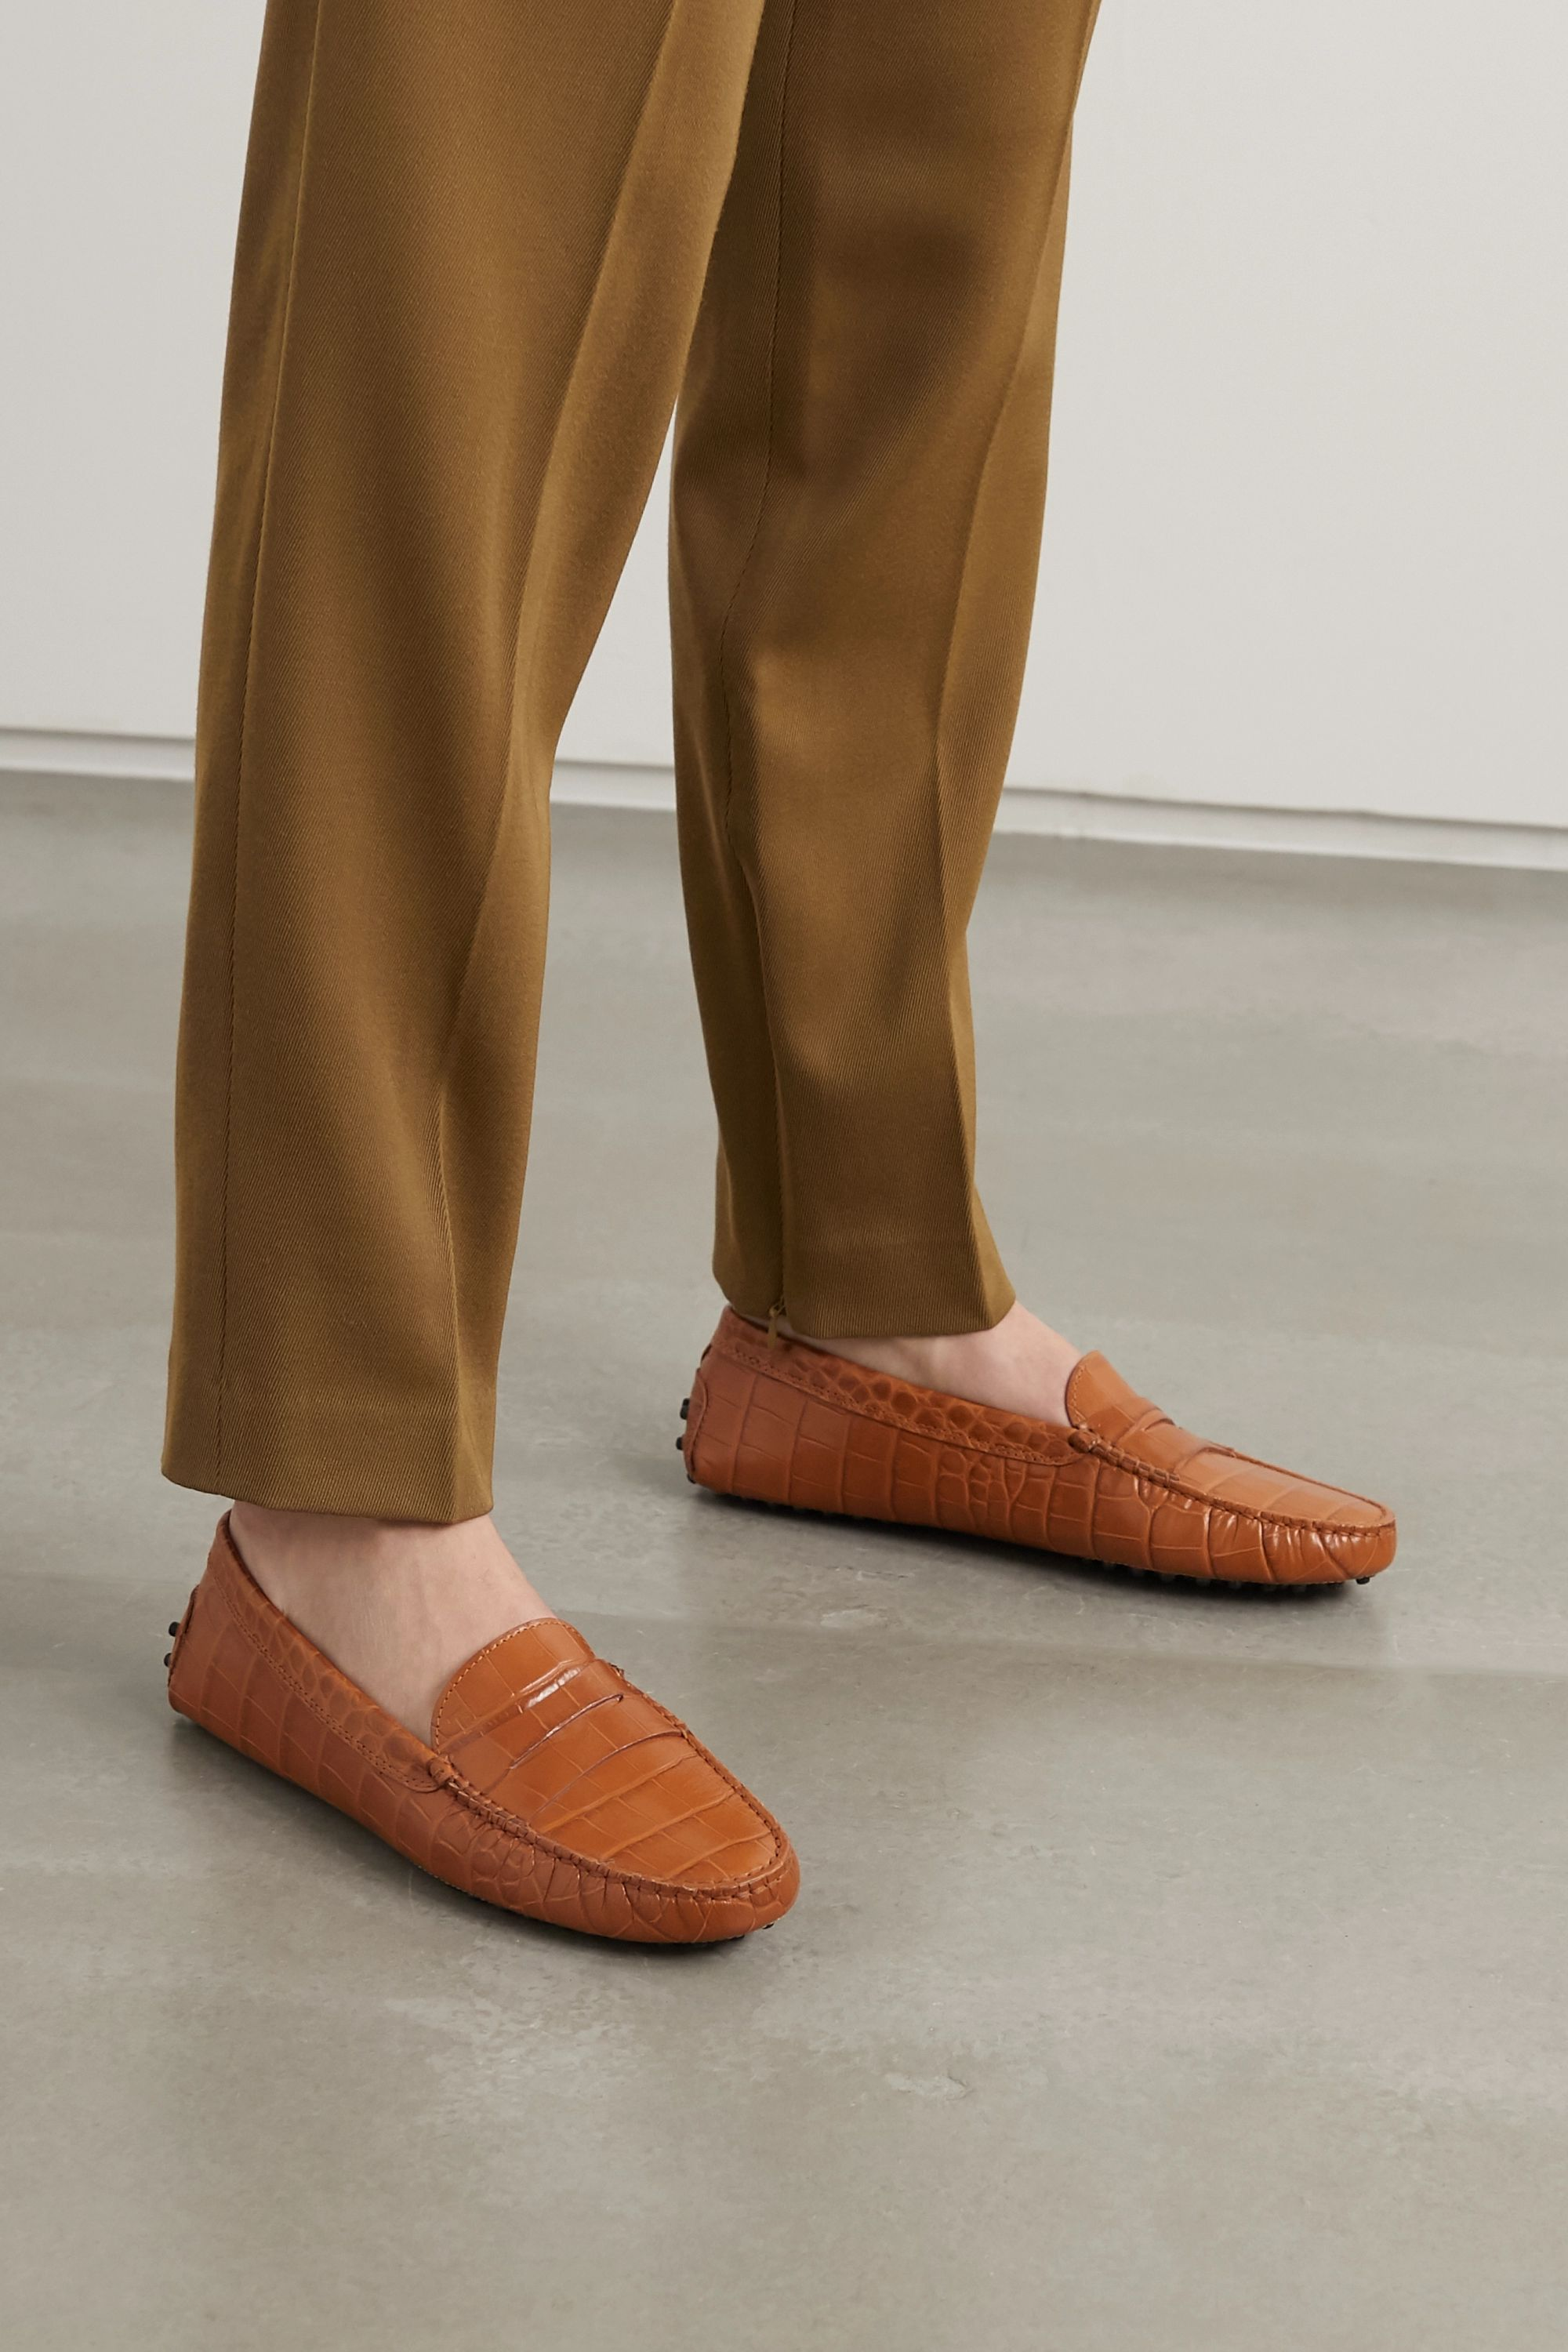 Tan Gommino croc-effect leather loafers